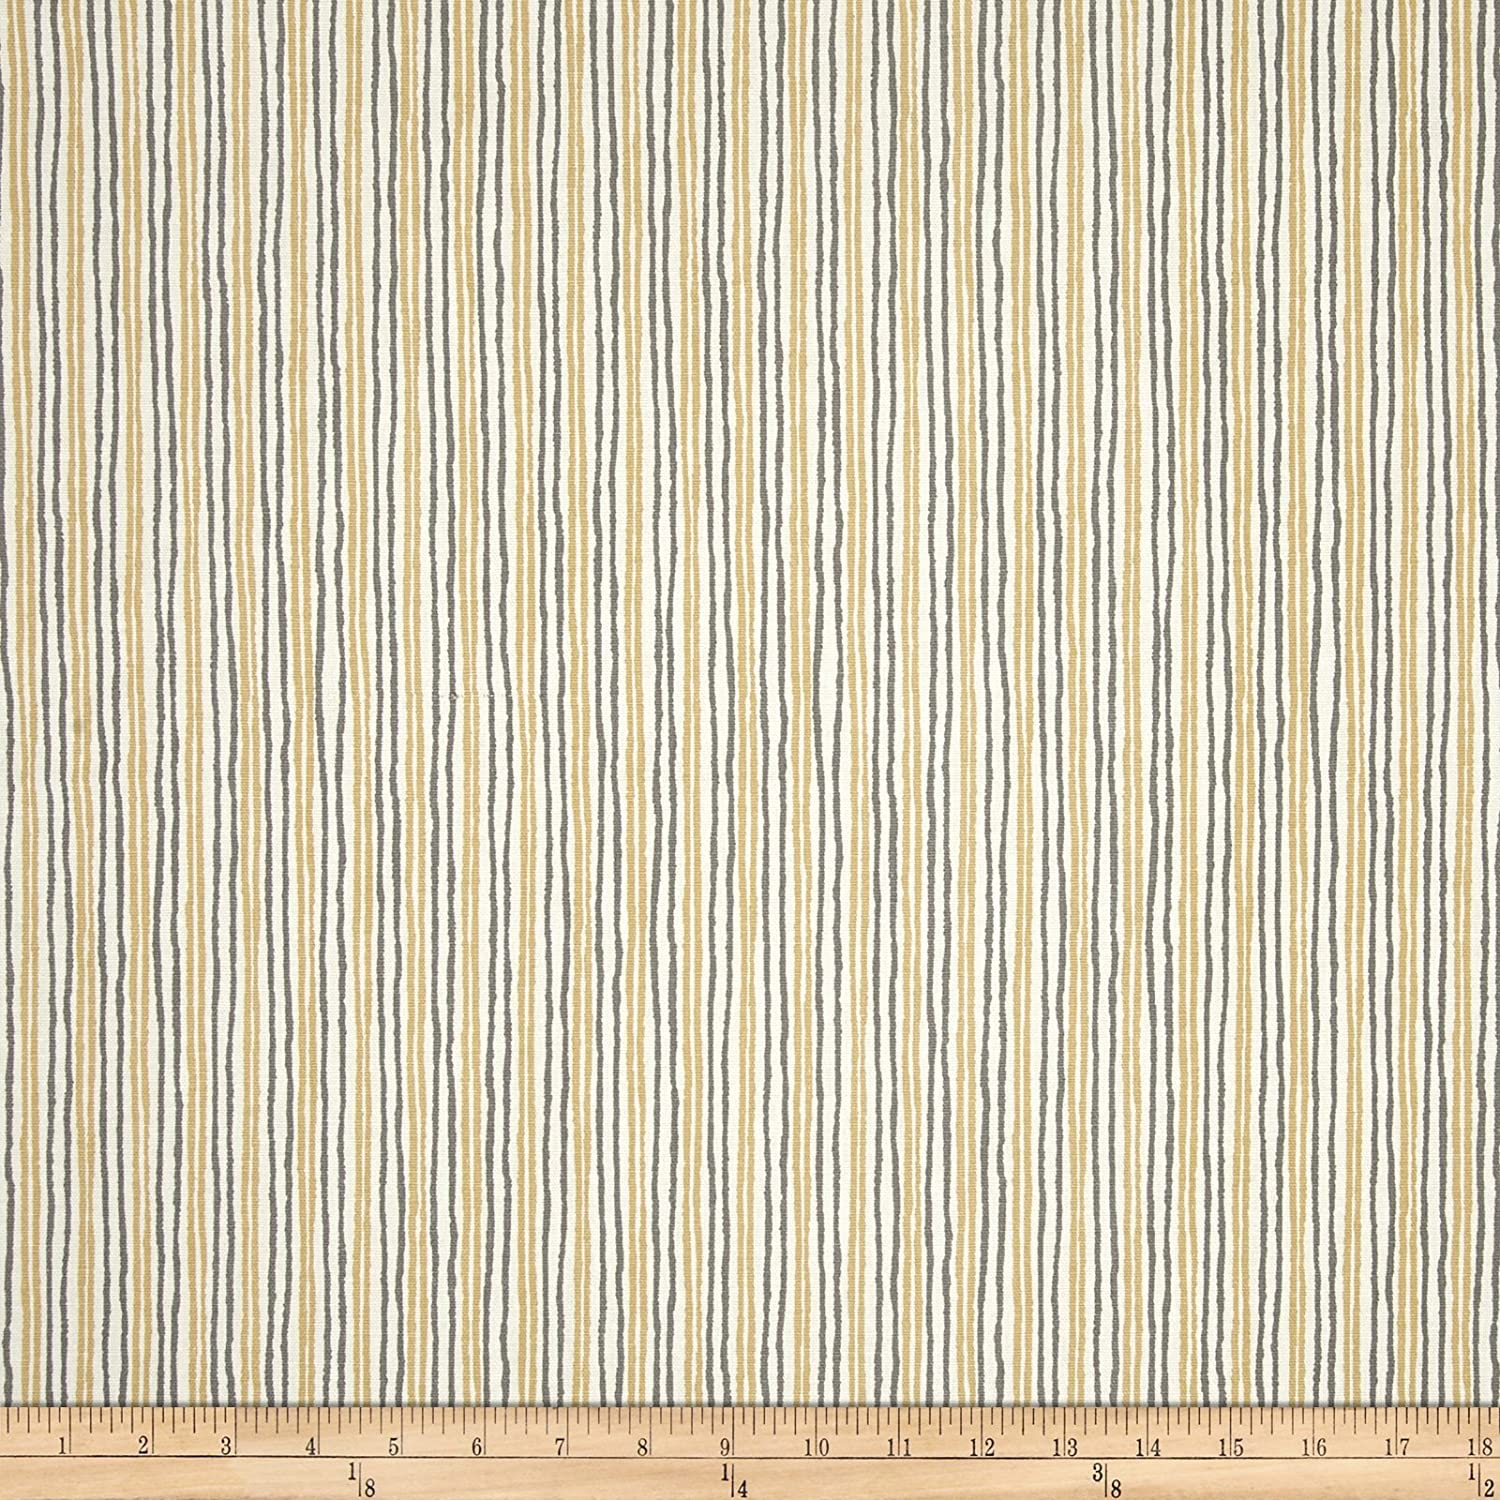 Magnolia Home Fashions Sullivan Stripe, Yard, Charcoal